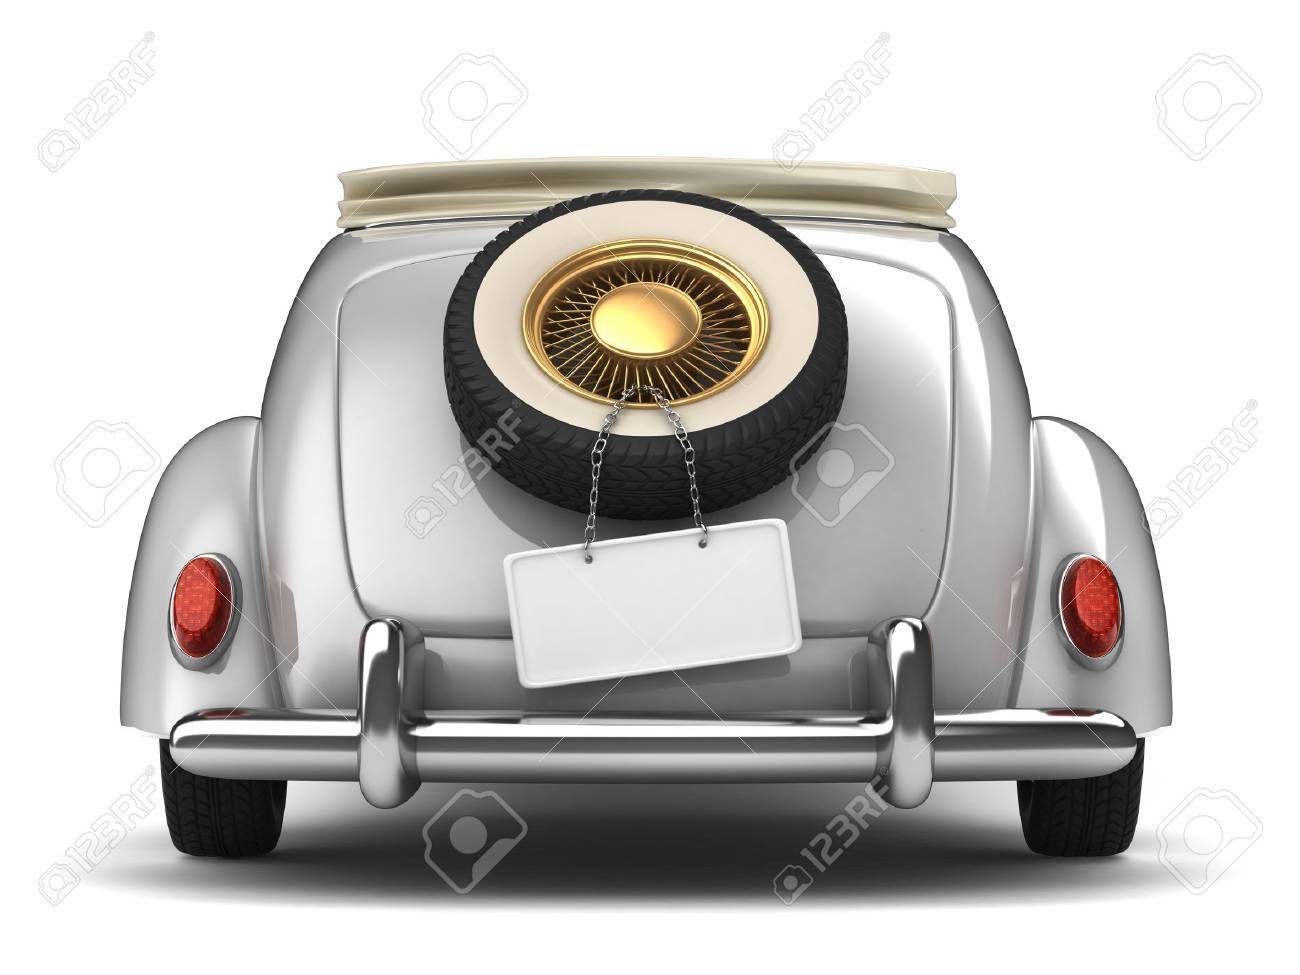 Vintage White Bridal Car Stock Photo, Picture And Royalty Free Image ...